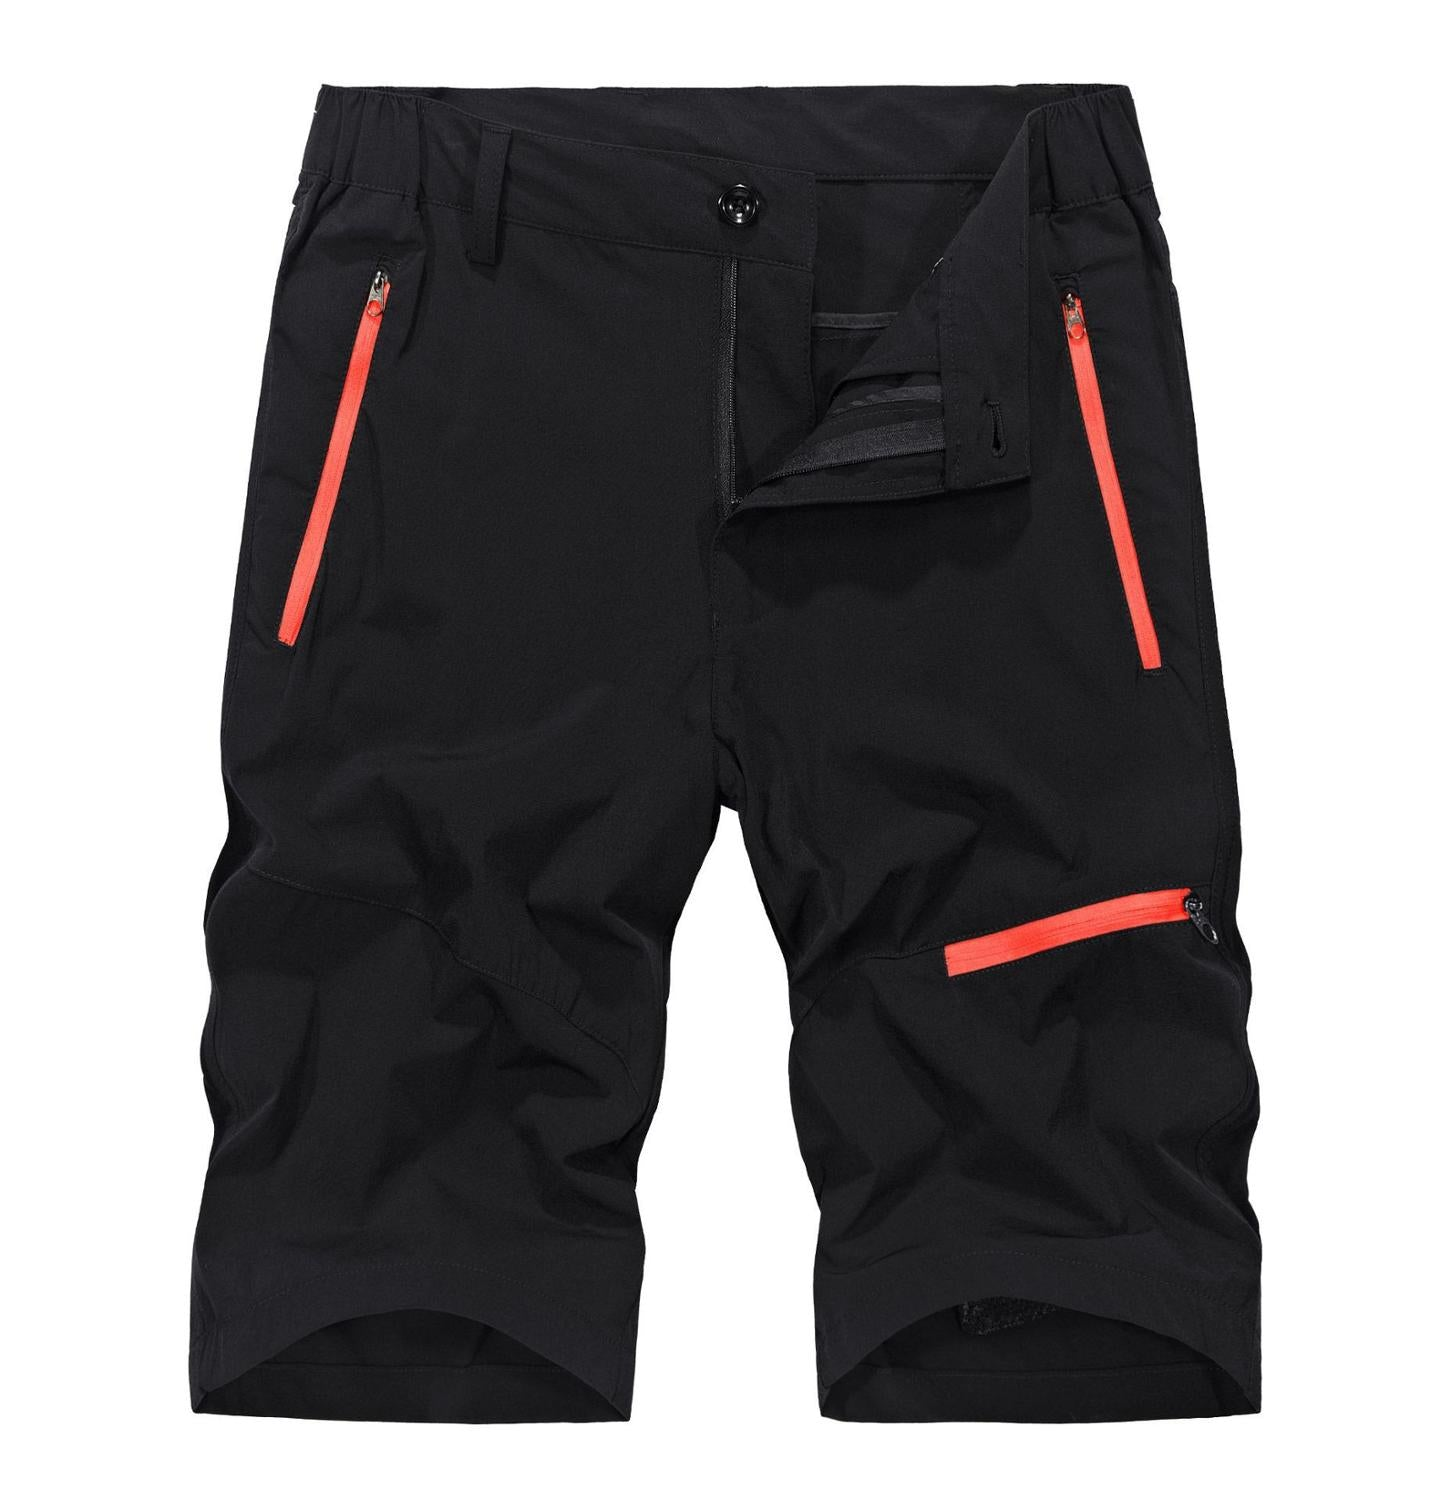 Men's Summer Quick Dry Breathable Shorts Men Cargo Jogger Shorts Outdoor Sportswear Hiking Camping Fishing Climbing Trousers